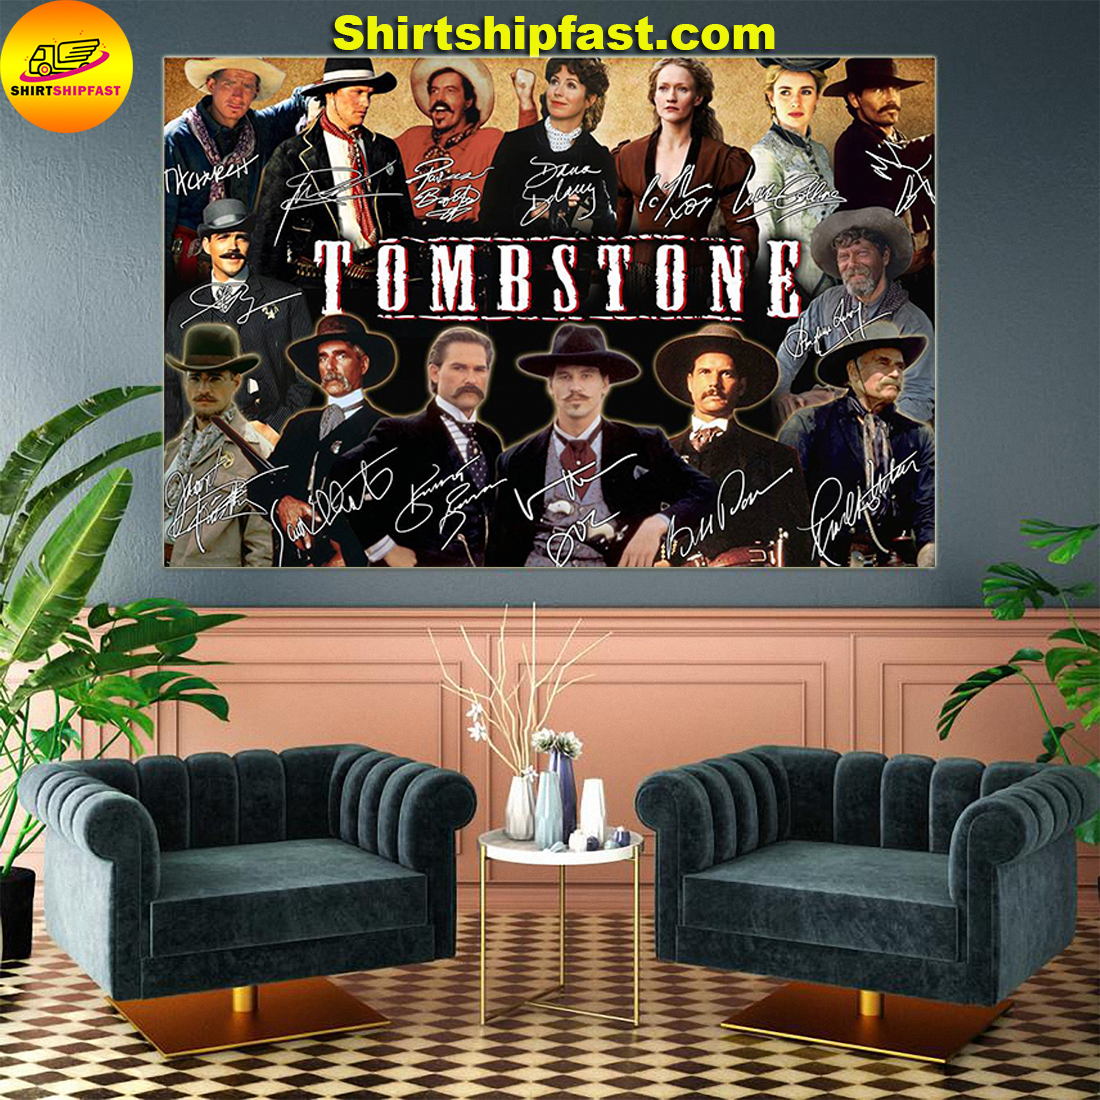 Tombstone actors signatures poster - Picture 2